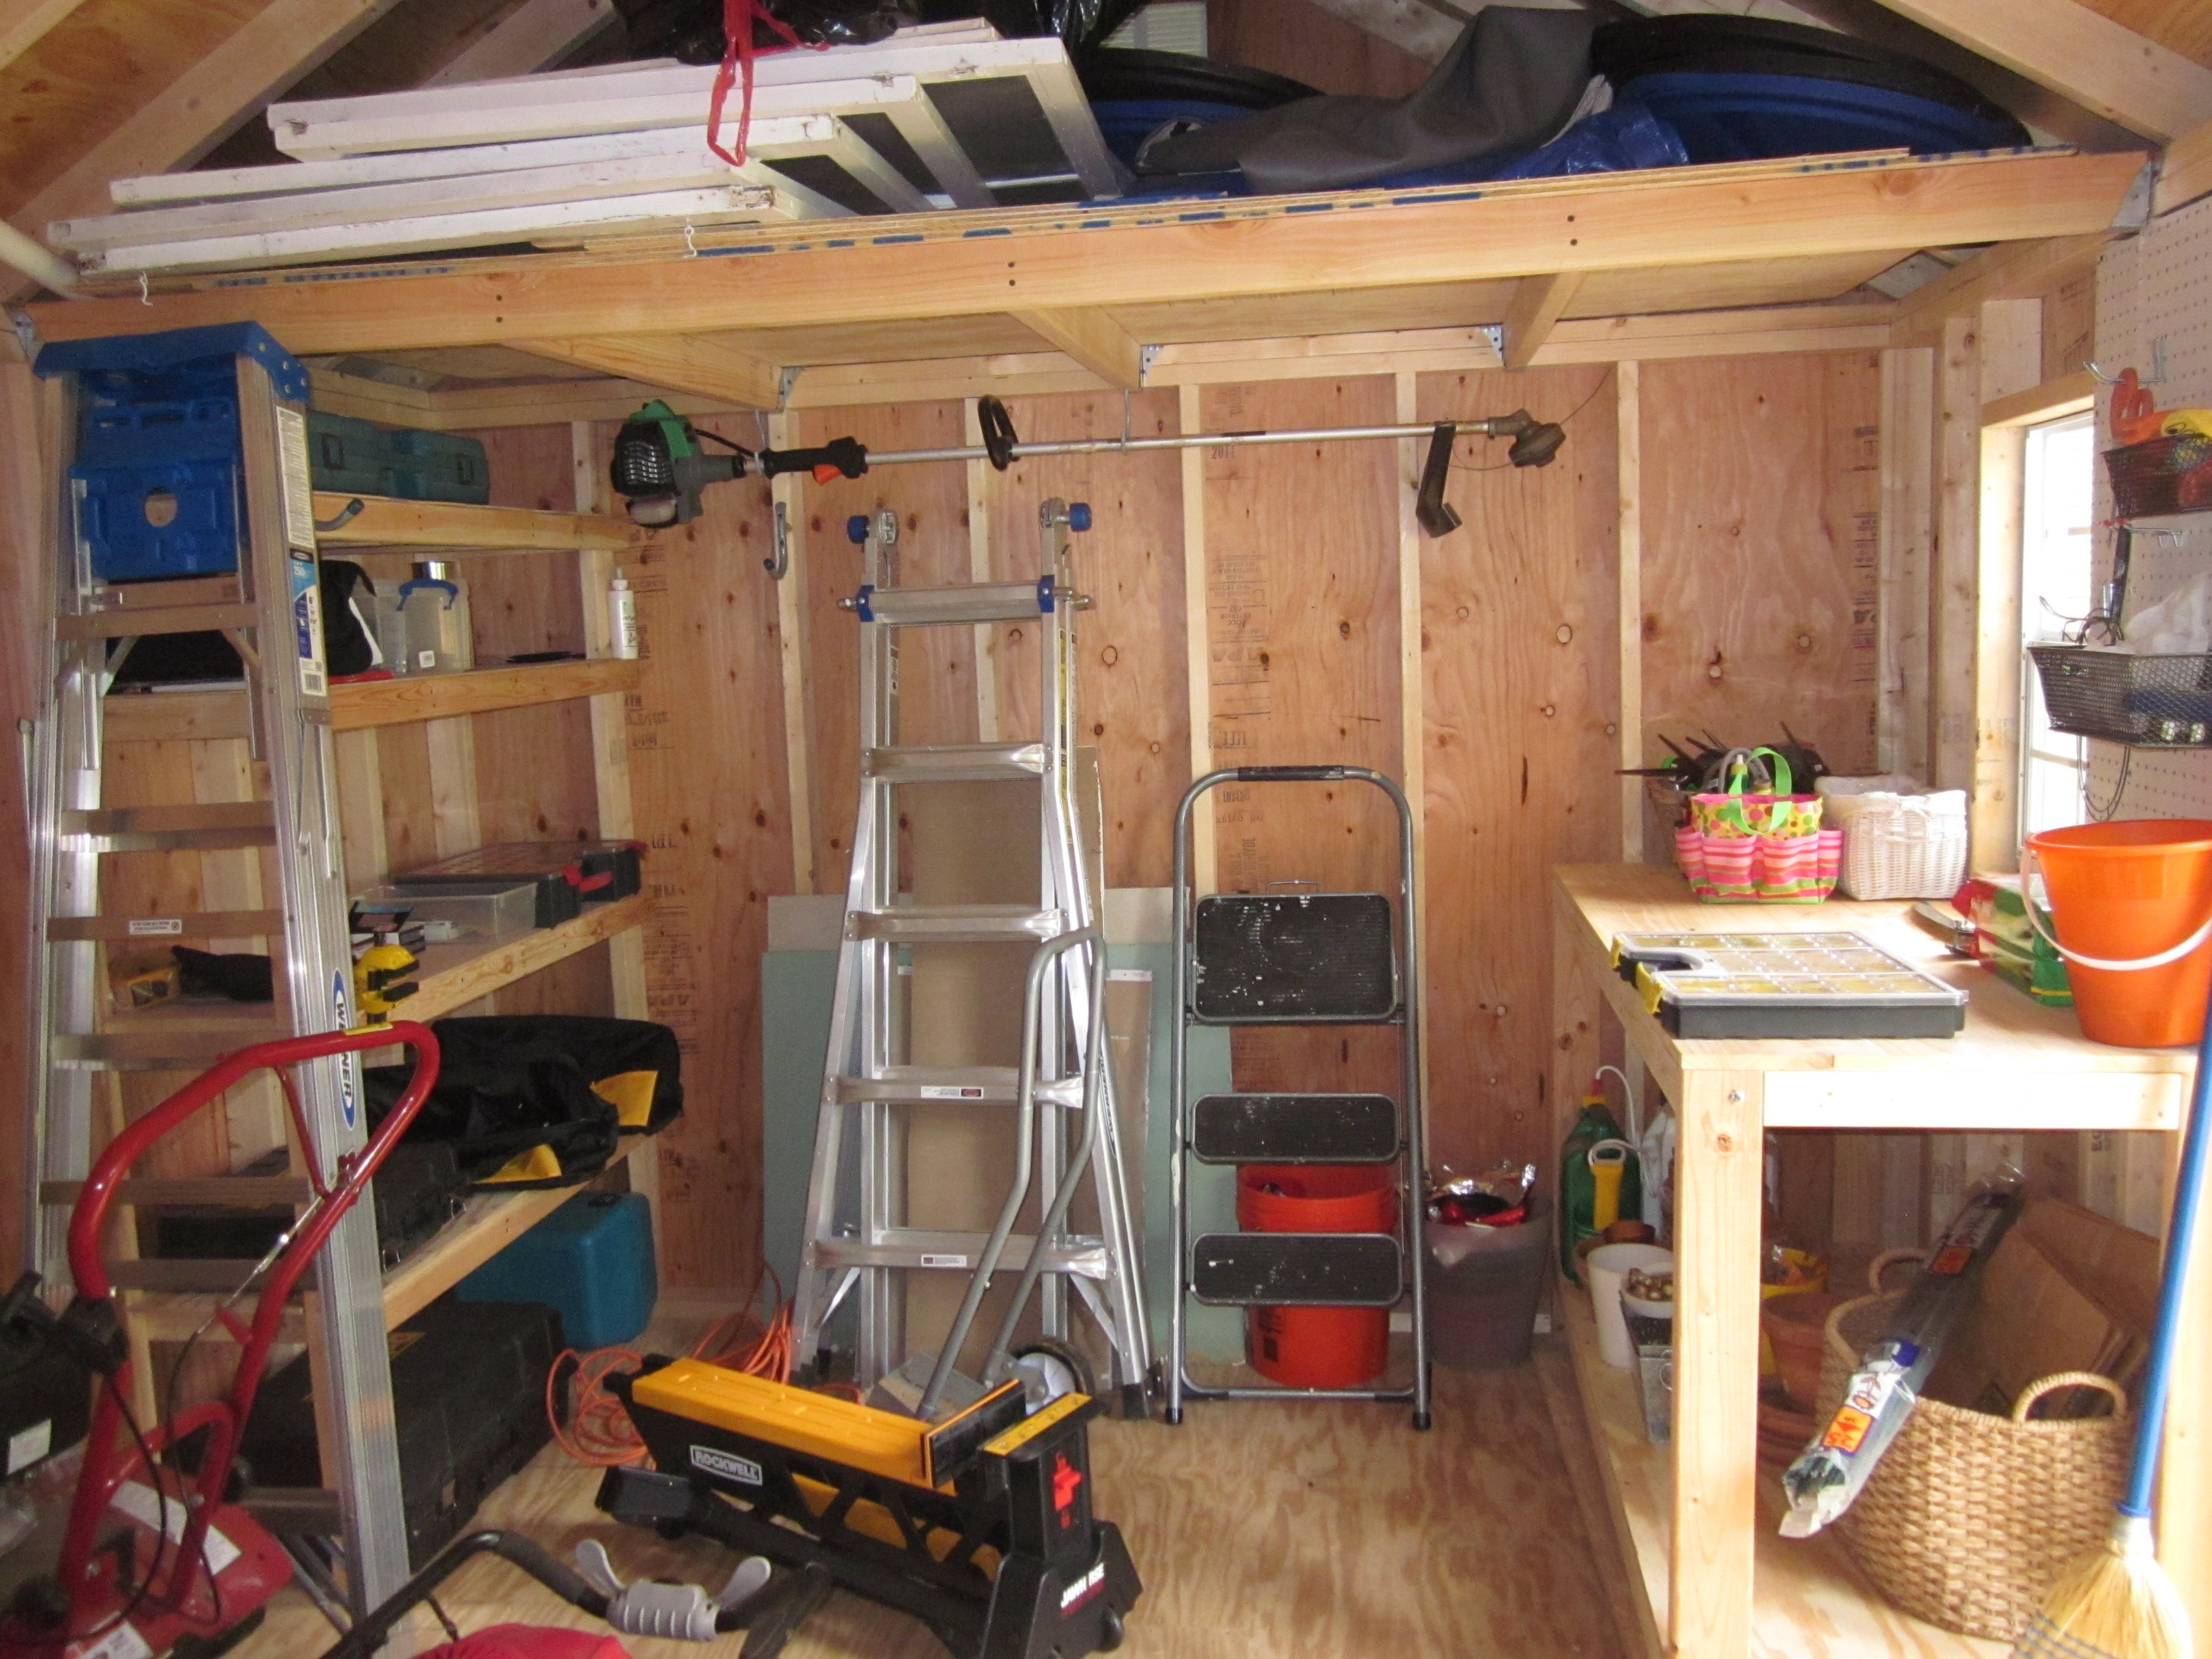 Loft Table Shelf For A 10 Foot Wide Shed All 2x4 S And 2x3 S With Plywood Tops Backyard Storage Sheds Shed Shelving Shed